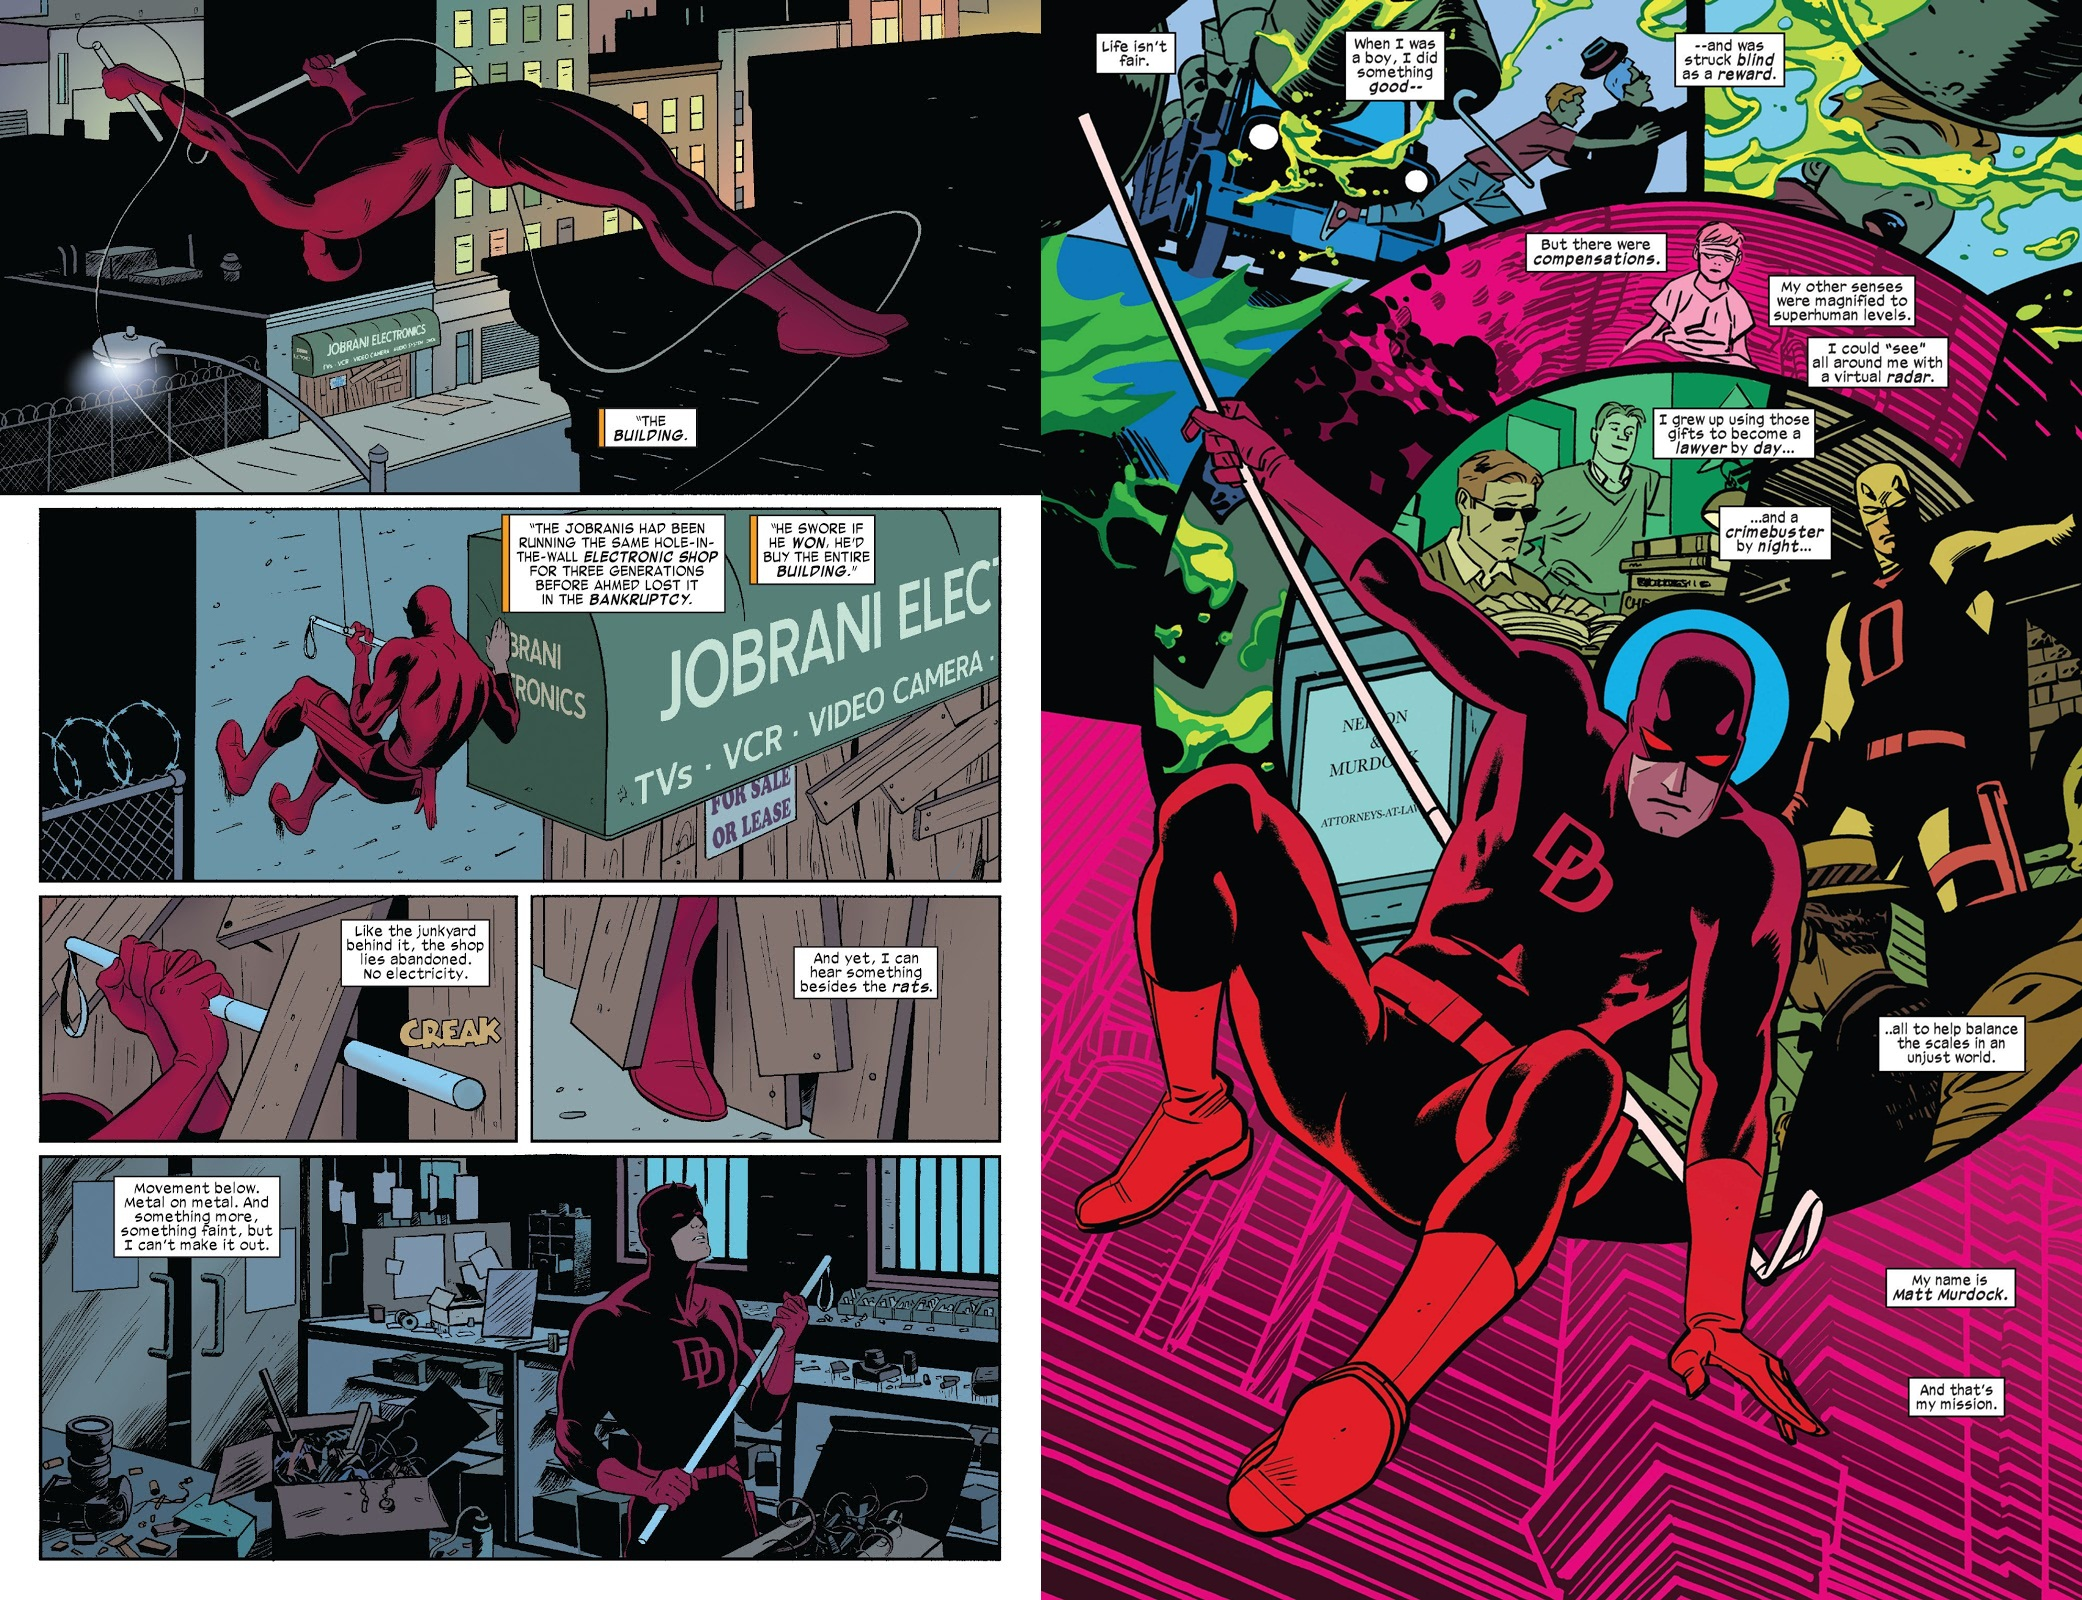 Daredevil by Mark Waid Omnibus Vol 1 review